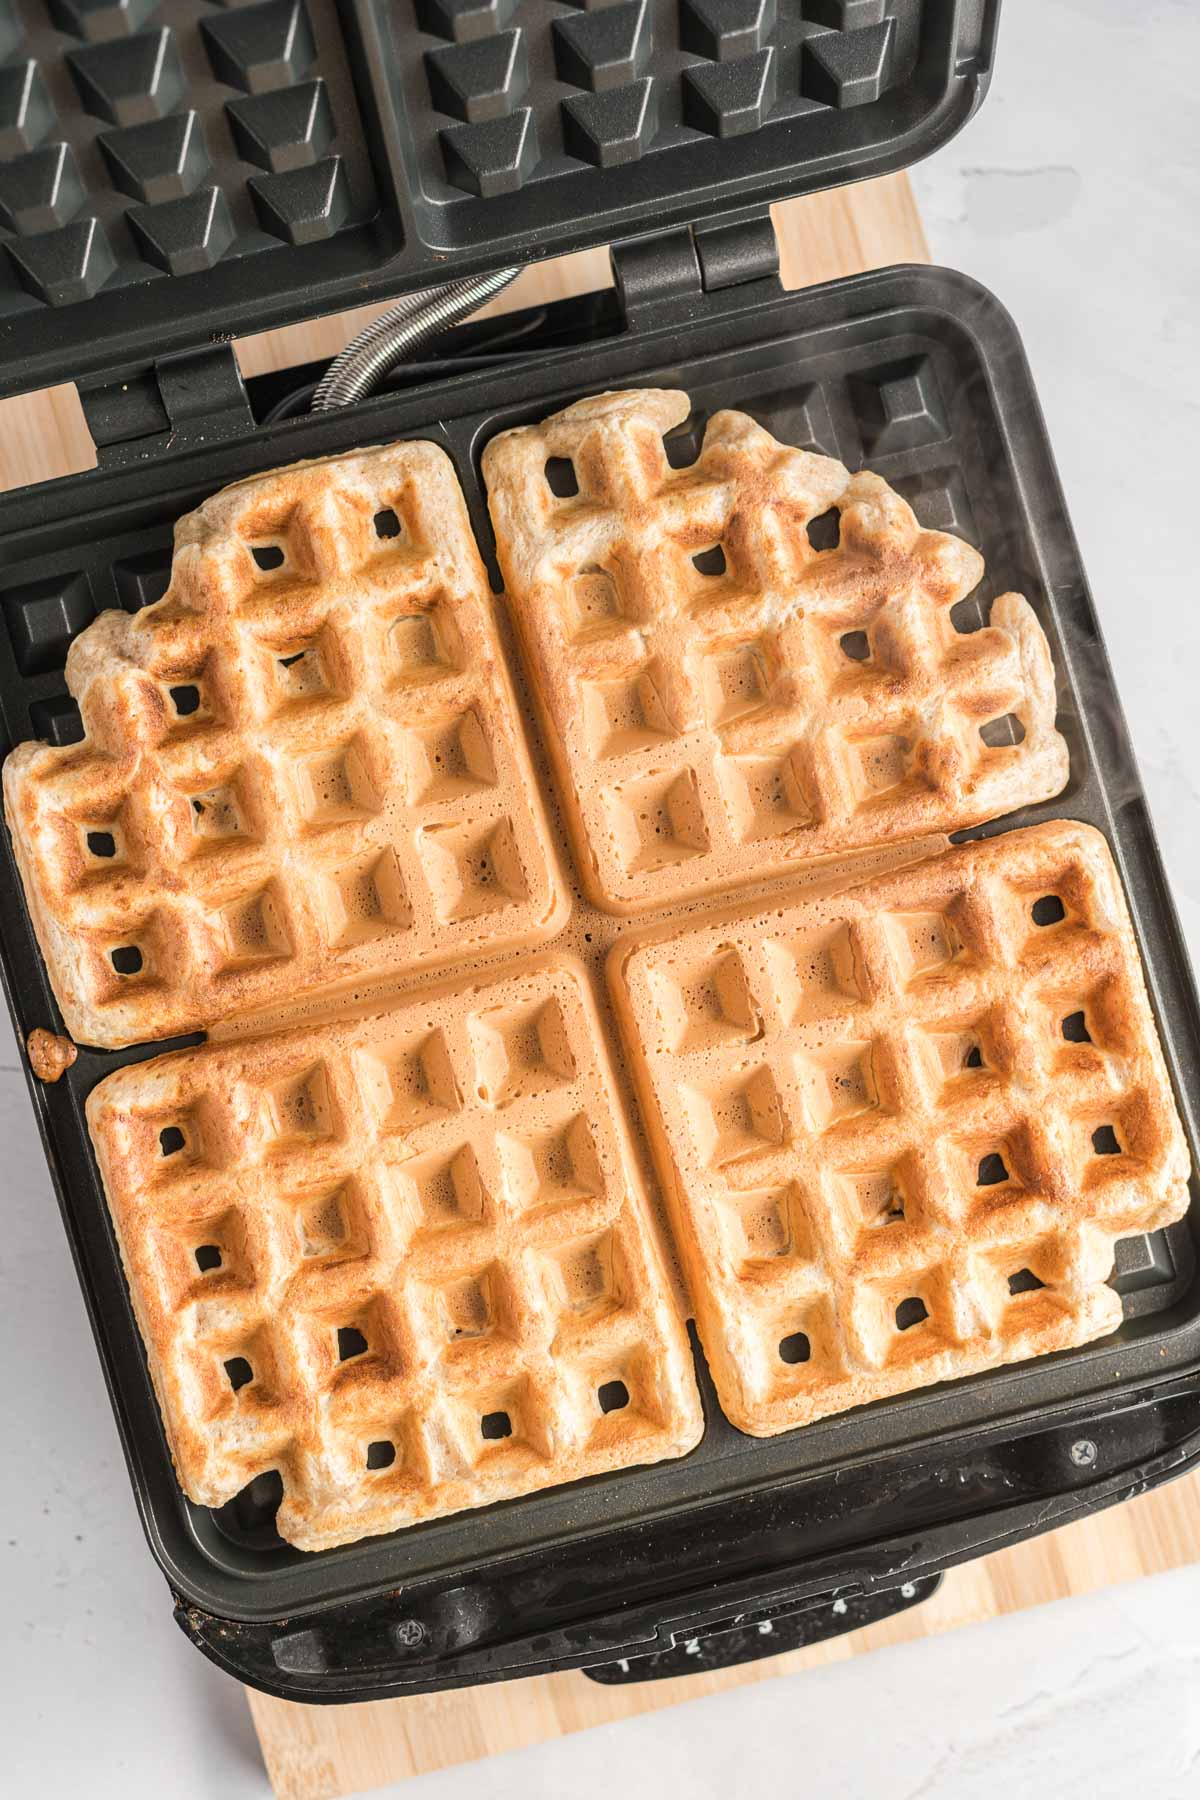 Four cooked waffles on a non-stick waffle iron.